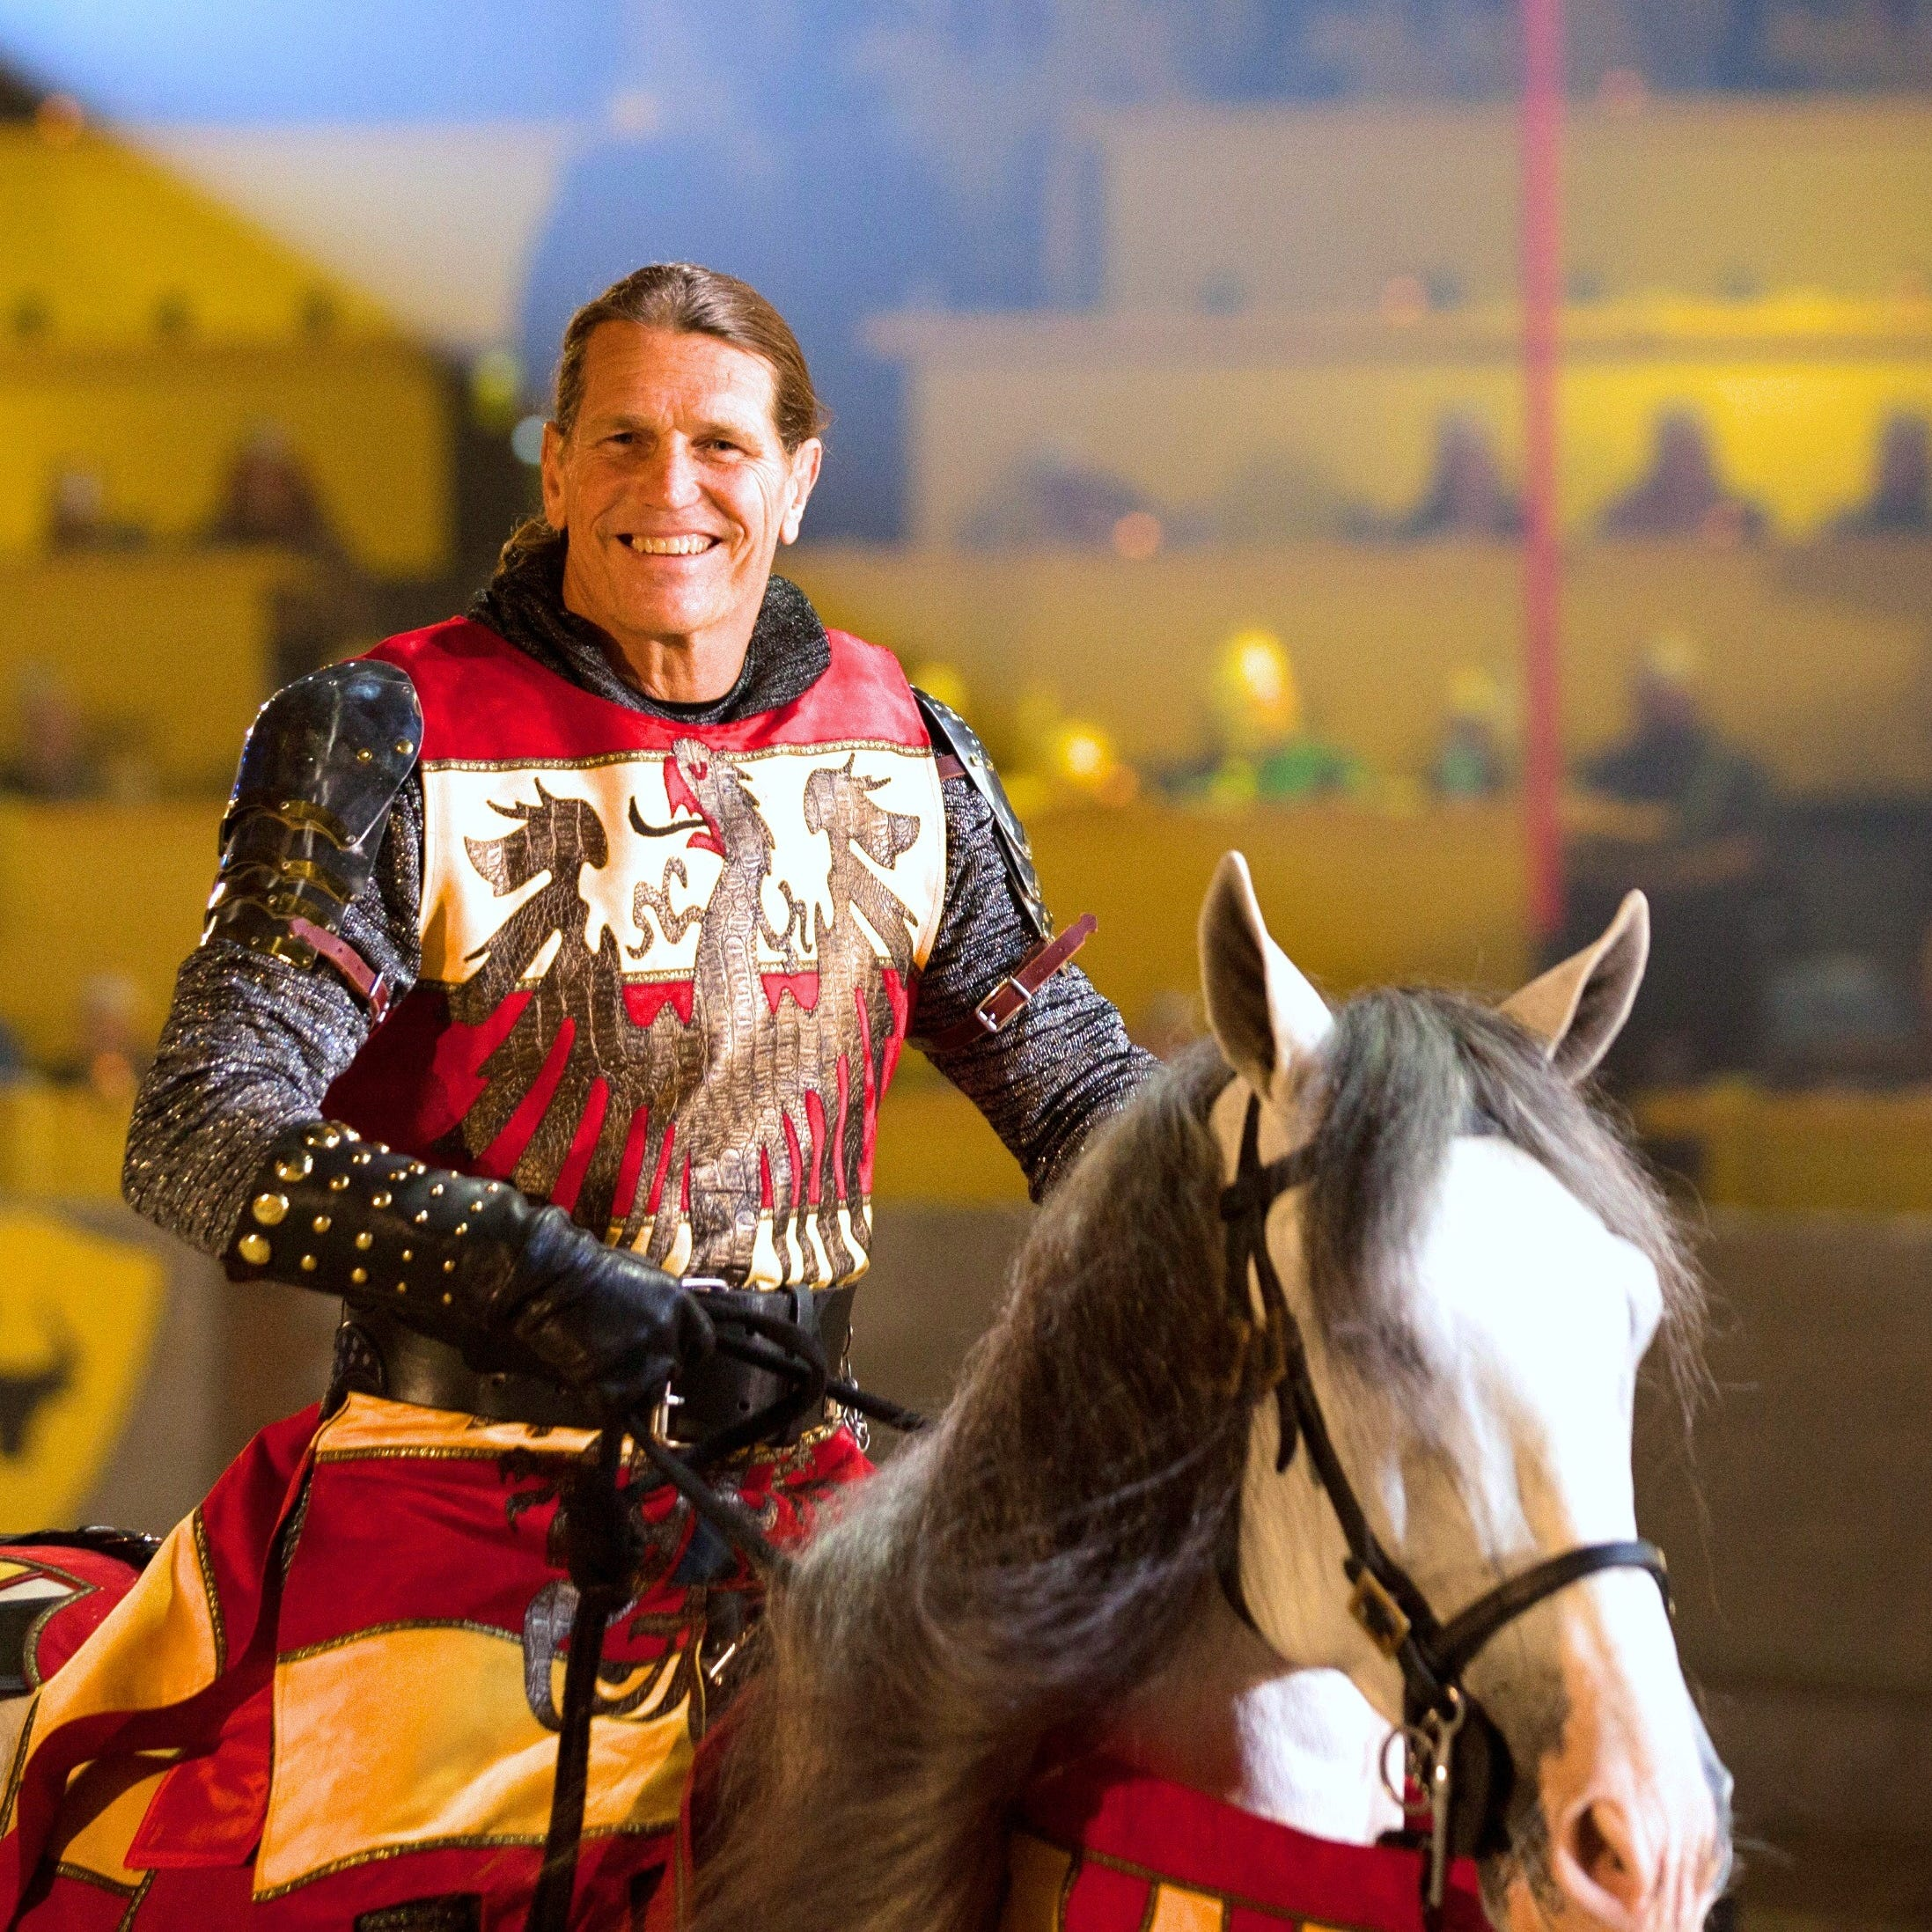 Medieval Times is hiring knights. Do you have what it takes?